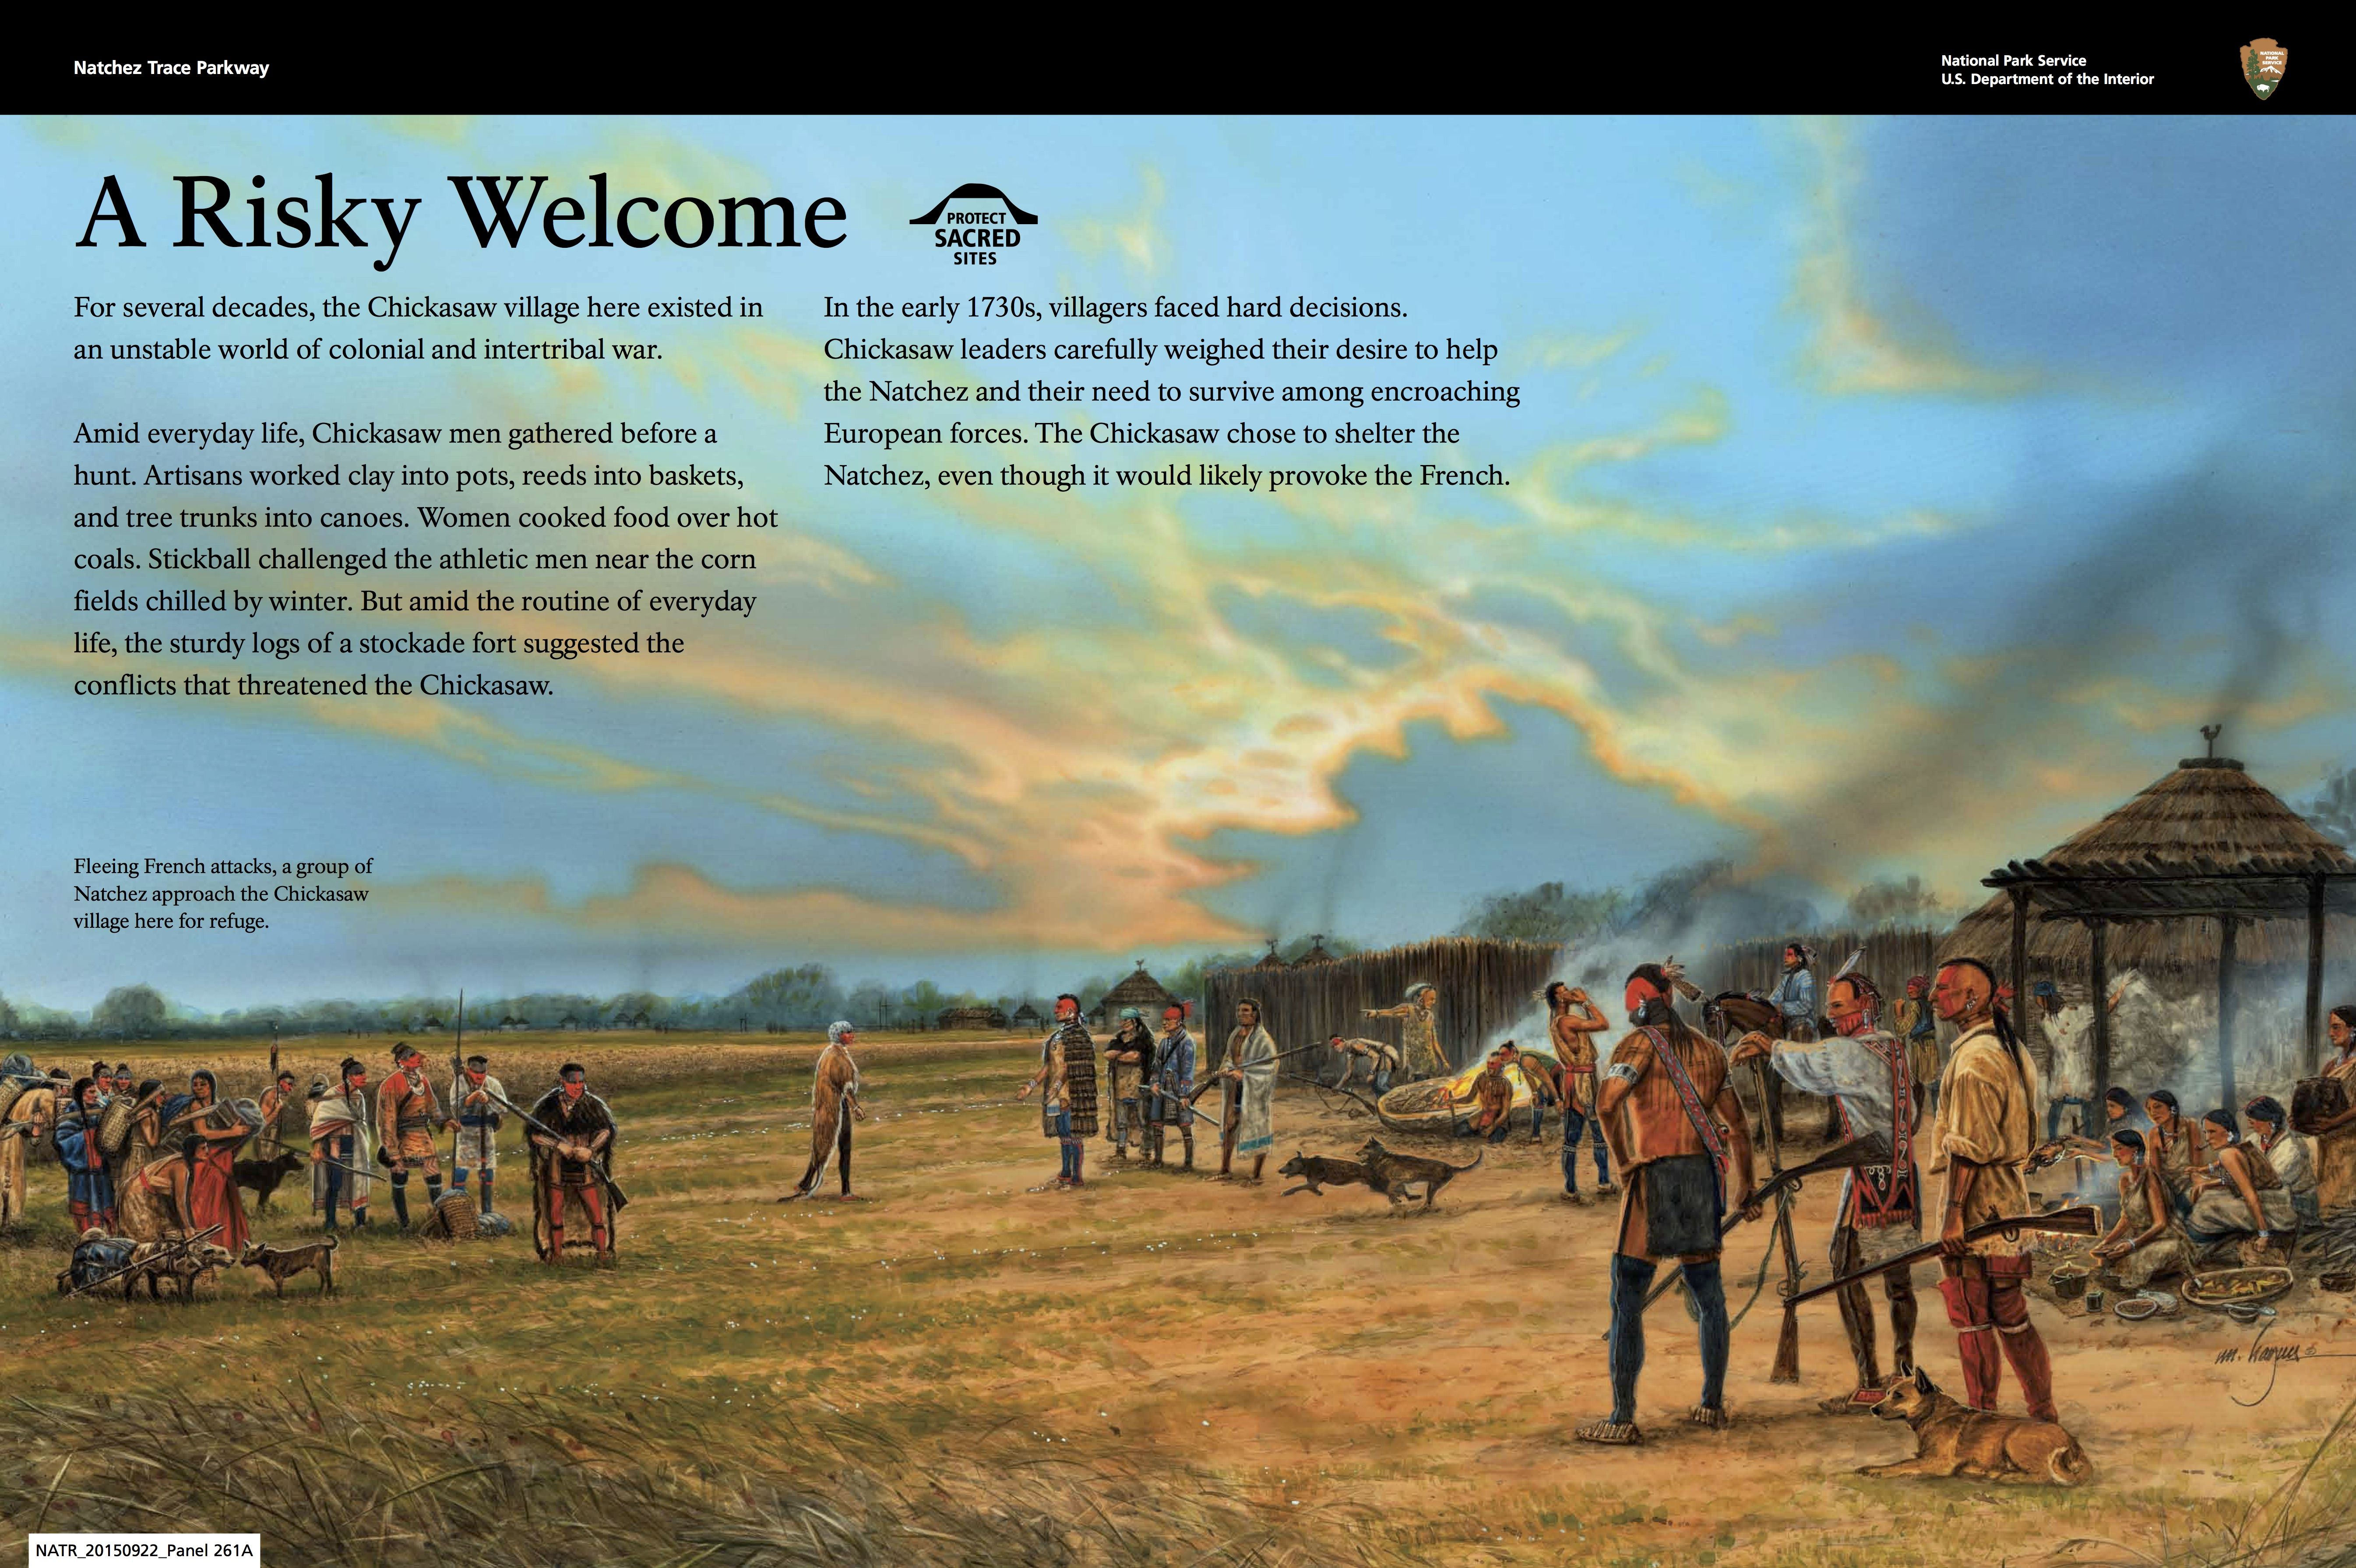 A new series of wayside exhibit panels for Natchez Trace Parkway focuses on the centuries of Indian history associated with the trace.